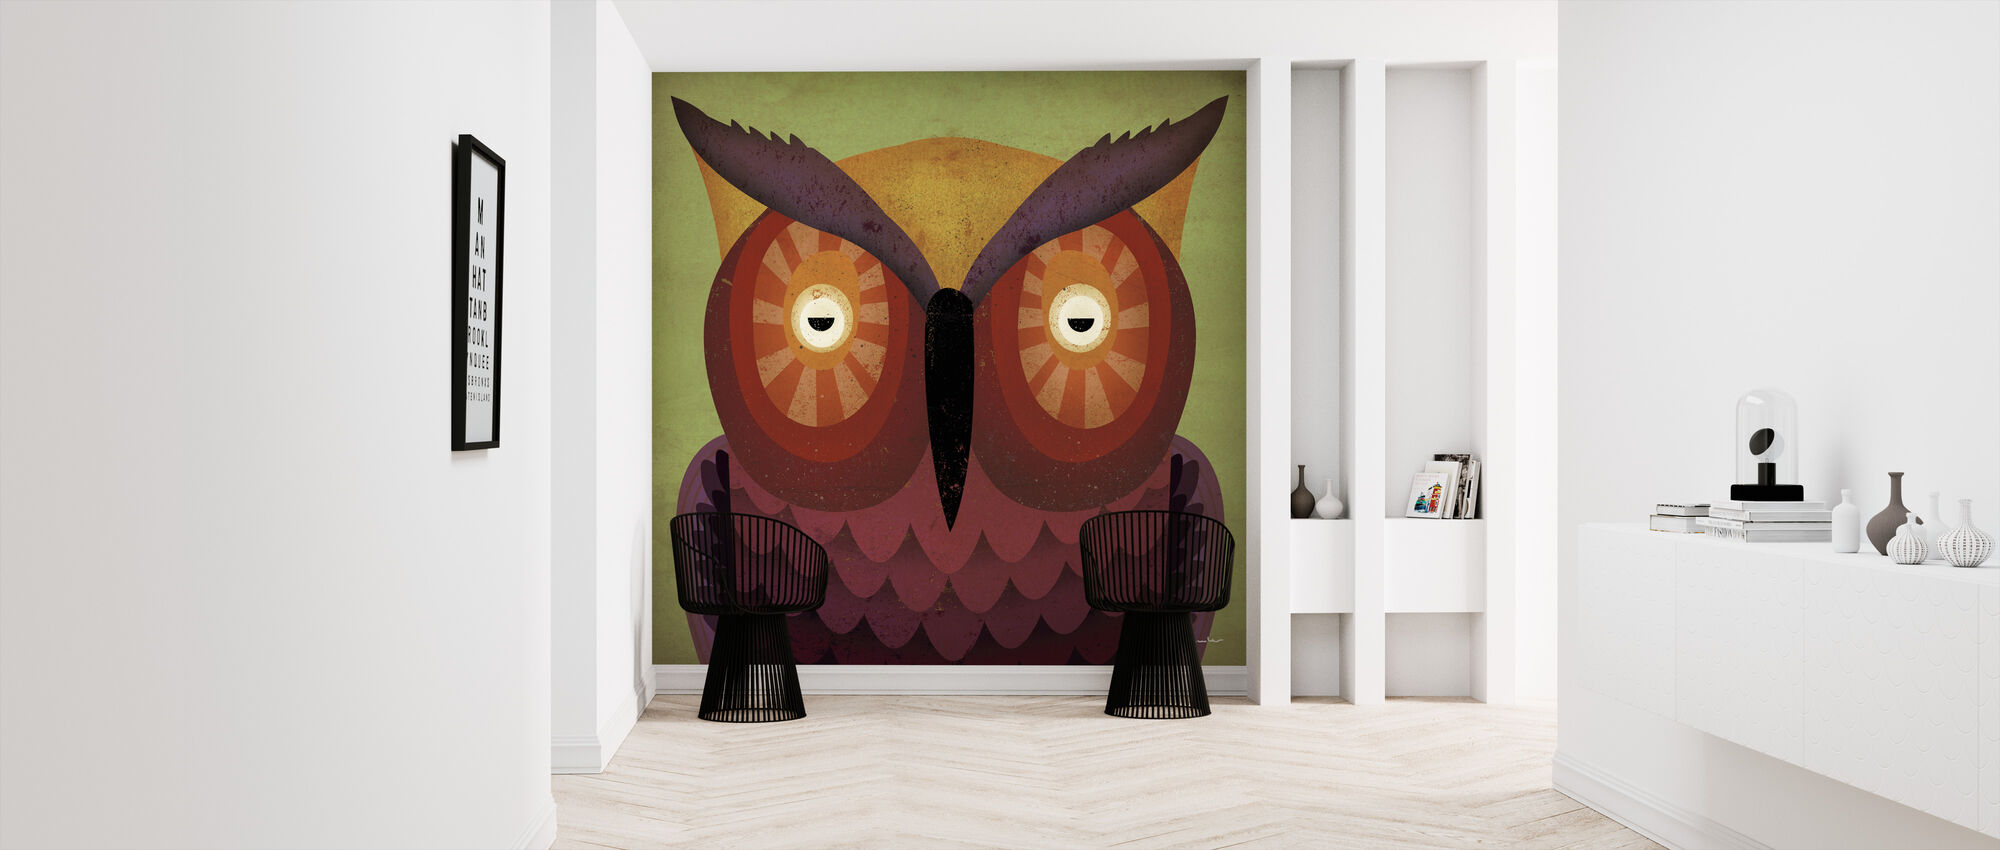 Ryan Fowler - Owl - Wallpaper - Hallway